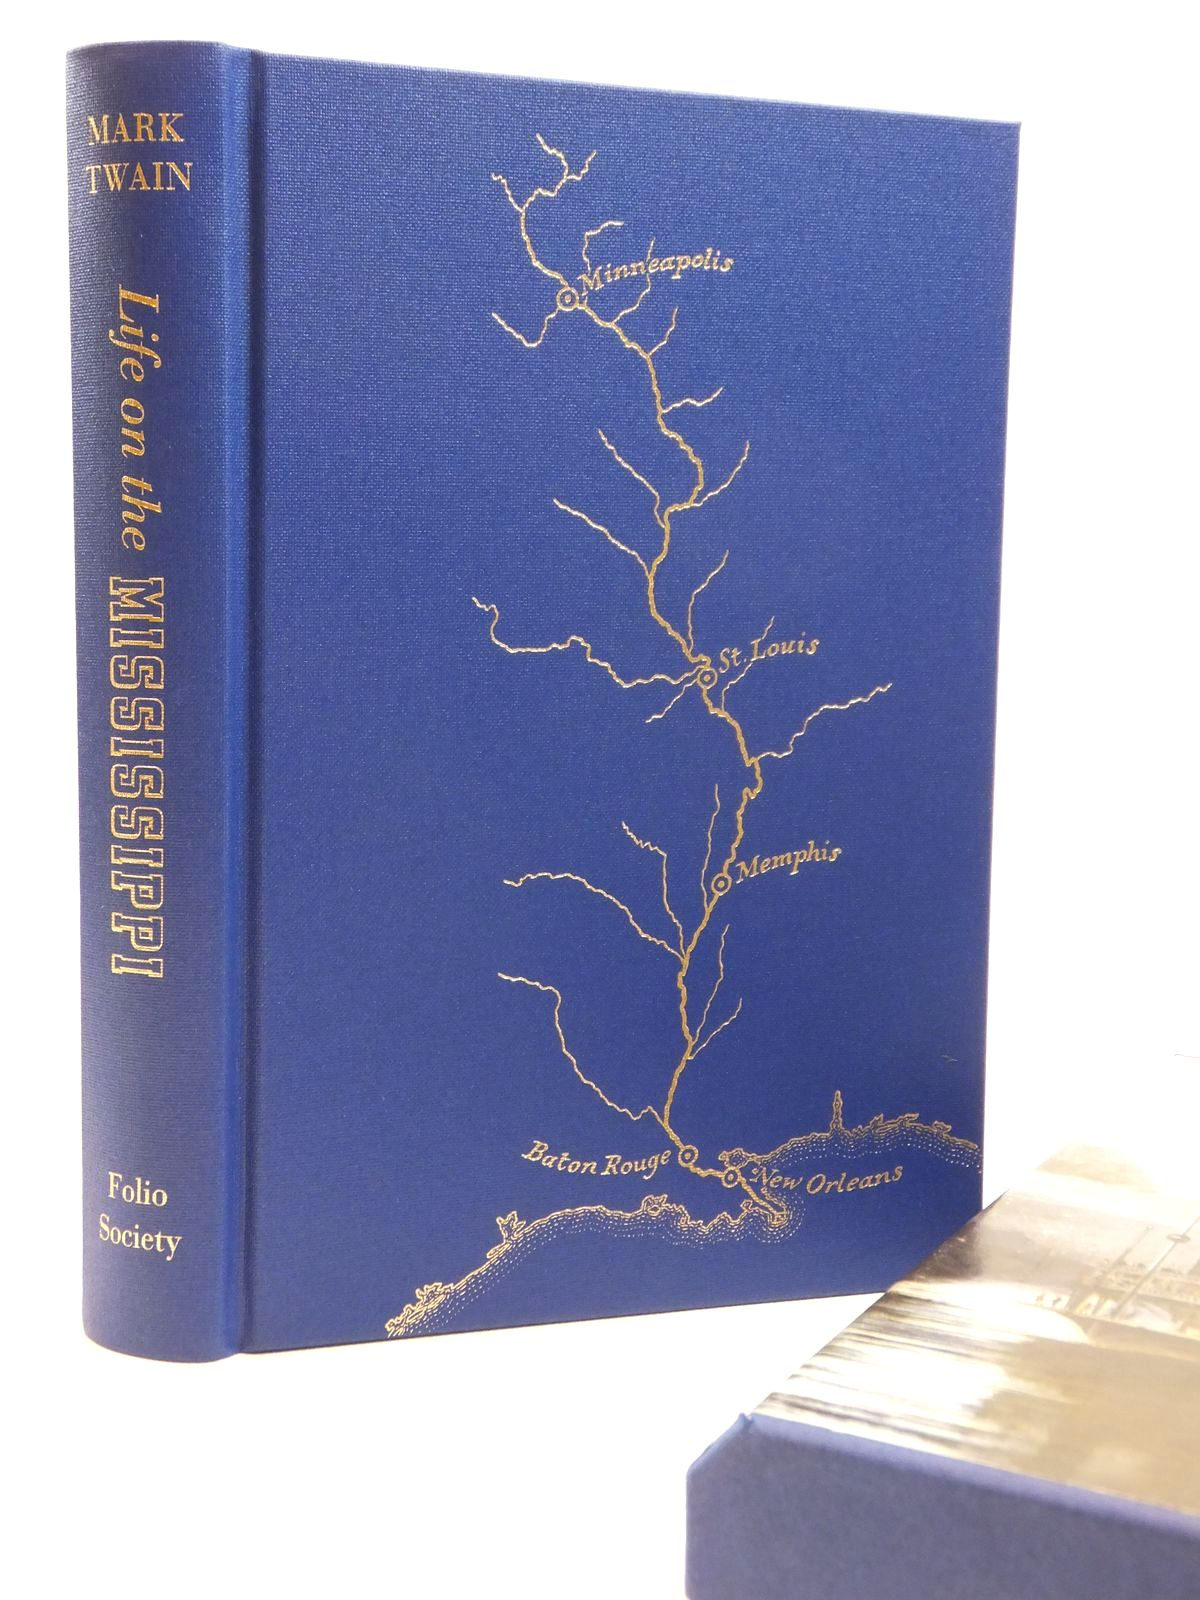 Photo of LIFE ON THE MISSISSIPPI written by Twain, Mark published by Folio Society (STOCK CODE: 2121915)  for sale by Stella & Rose's Books